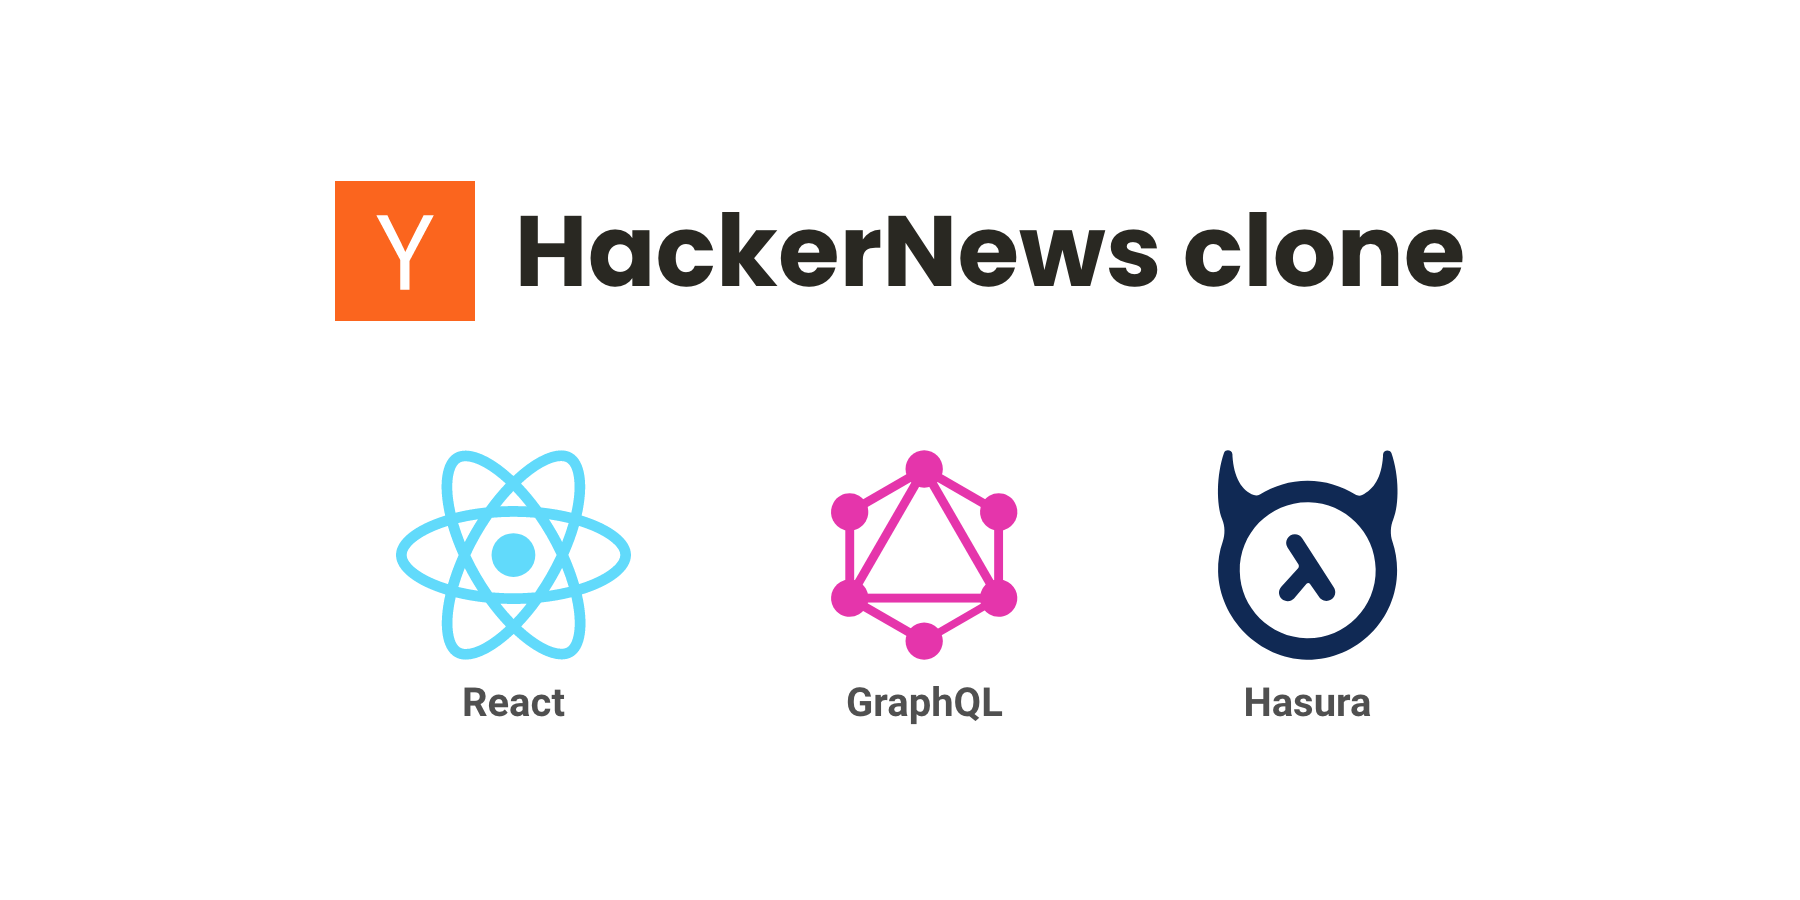 Building a Hacker News clone with GraphQL, Hasura and React